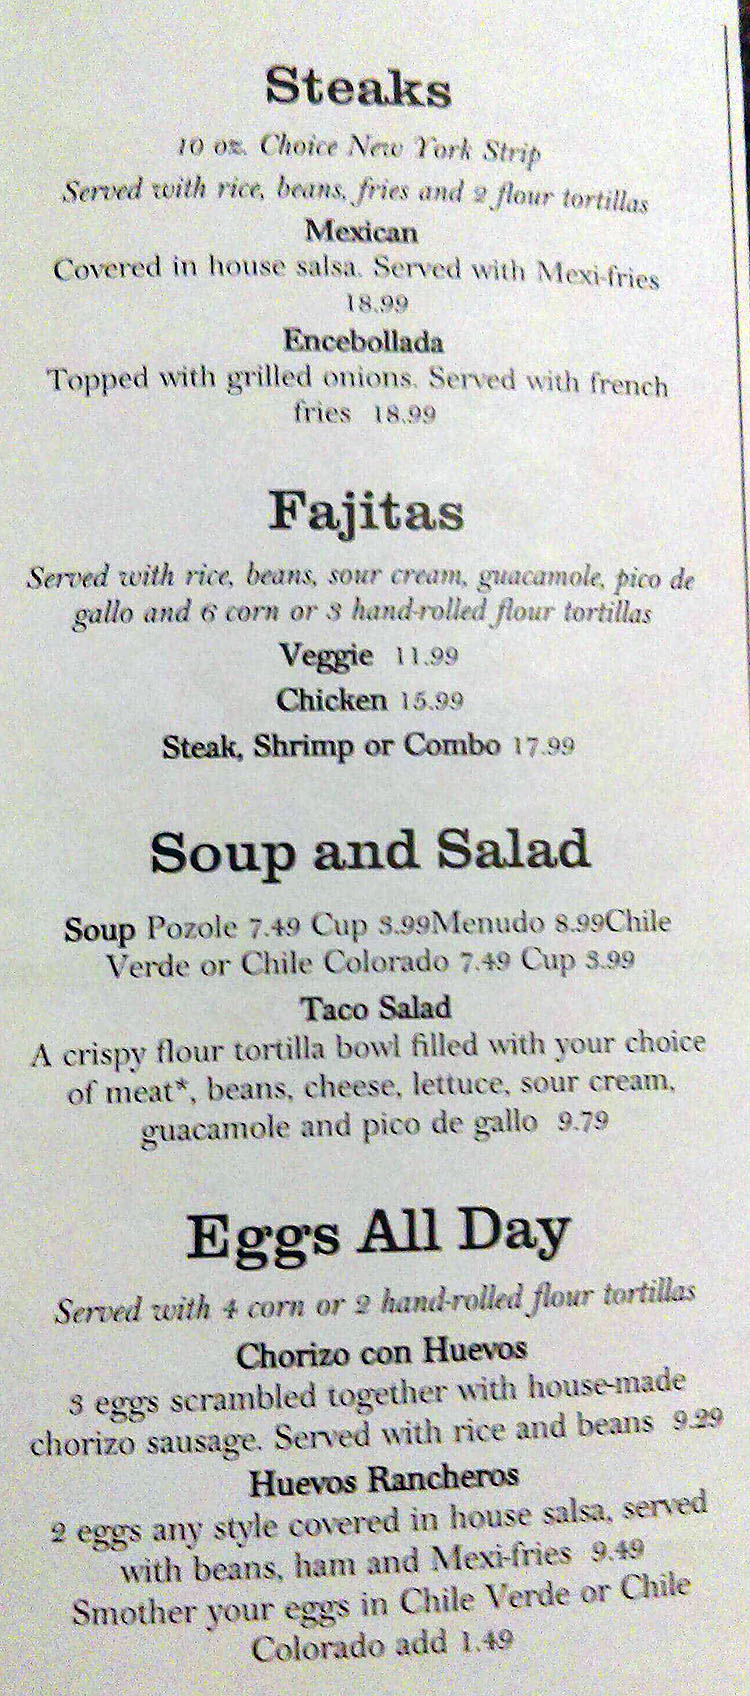 Cafe Silvestre menu - steaks, fajiltas, soup, salad, eggs all day